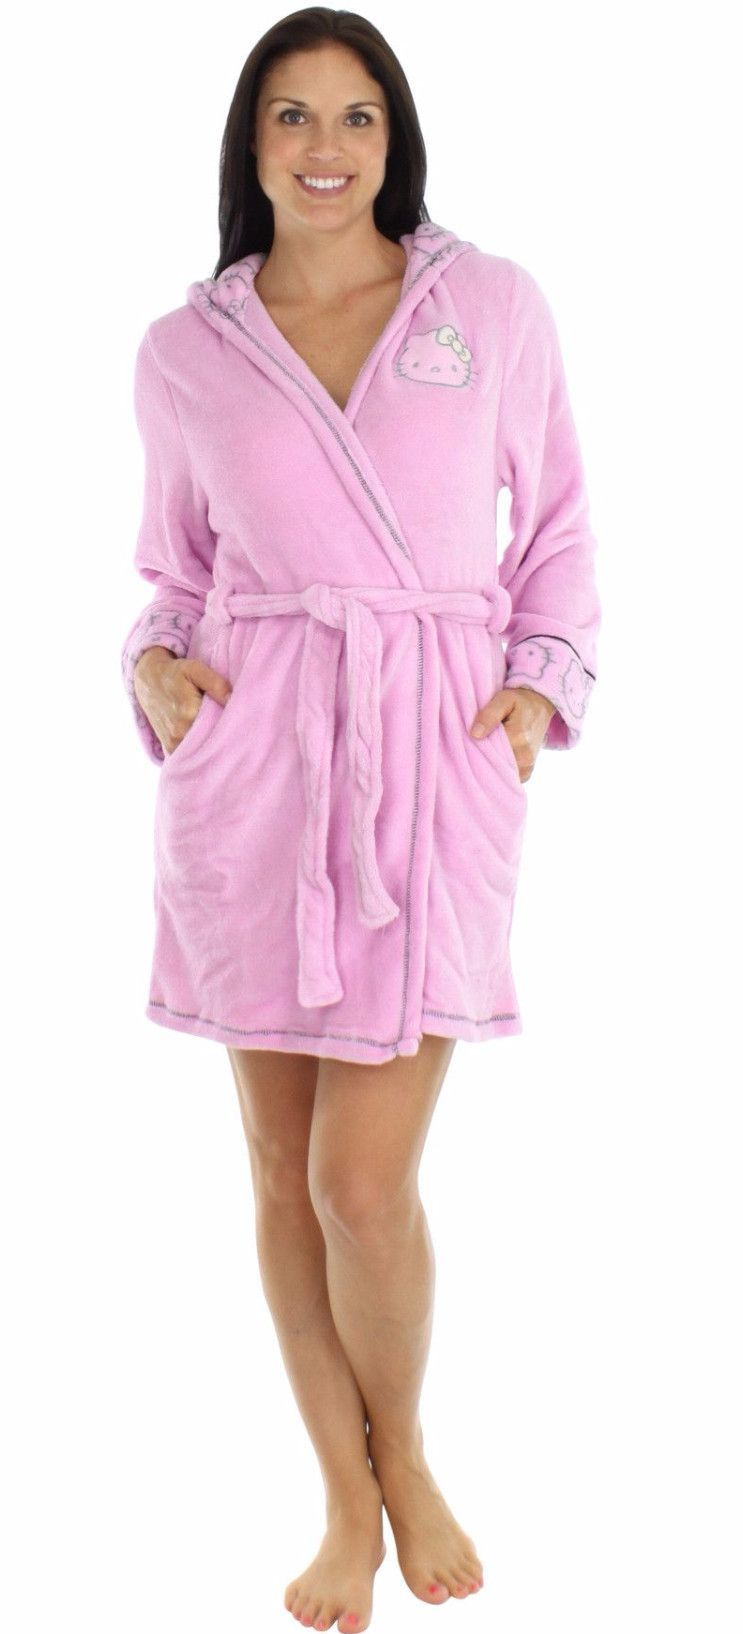 f72afcc8f This Hello Kitty hooded plush robe is great for lounging around the house.  Made of